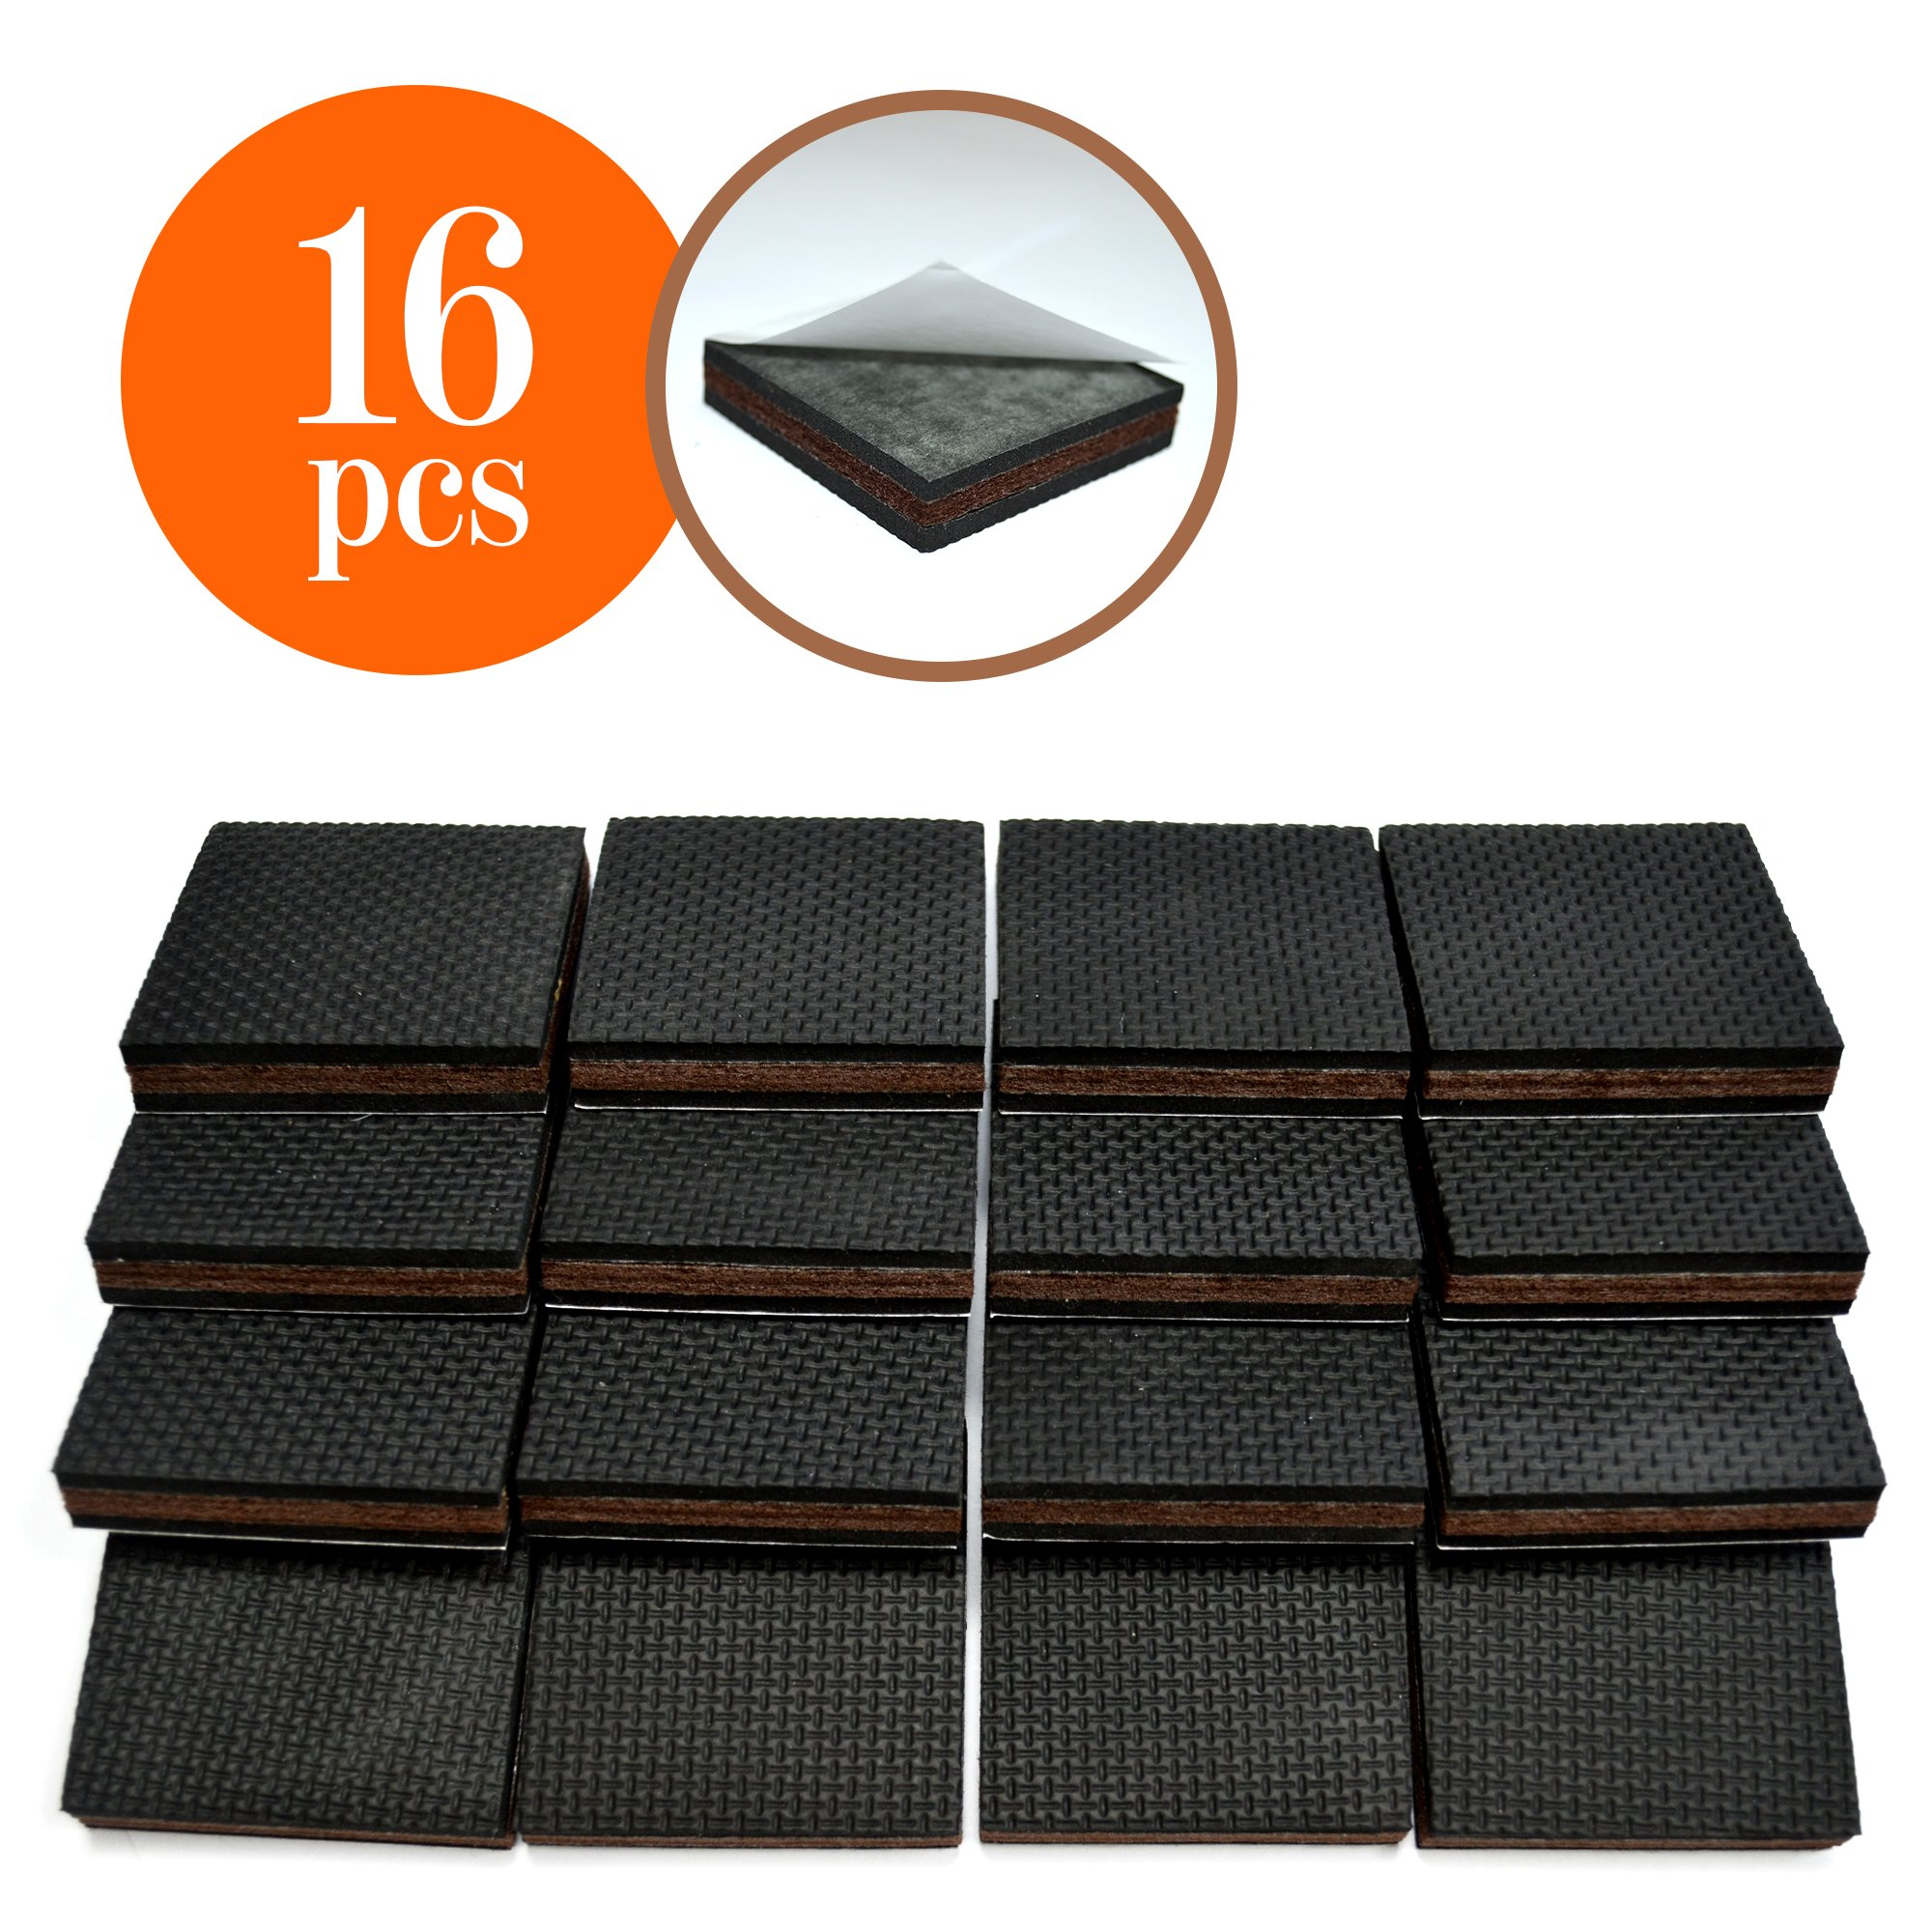 Non Slip 16 Square Furniture Pads Premium Rubber Felt Feet 2 Best Hardwood Floor Protectors And Fix All High Effective